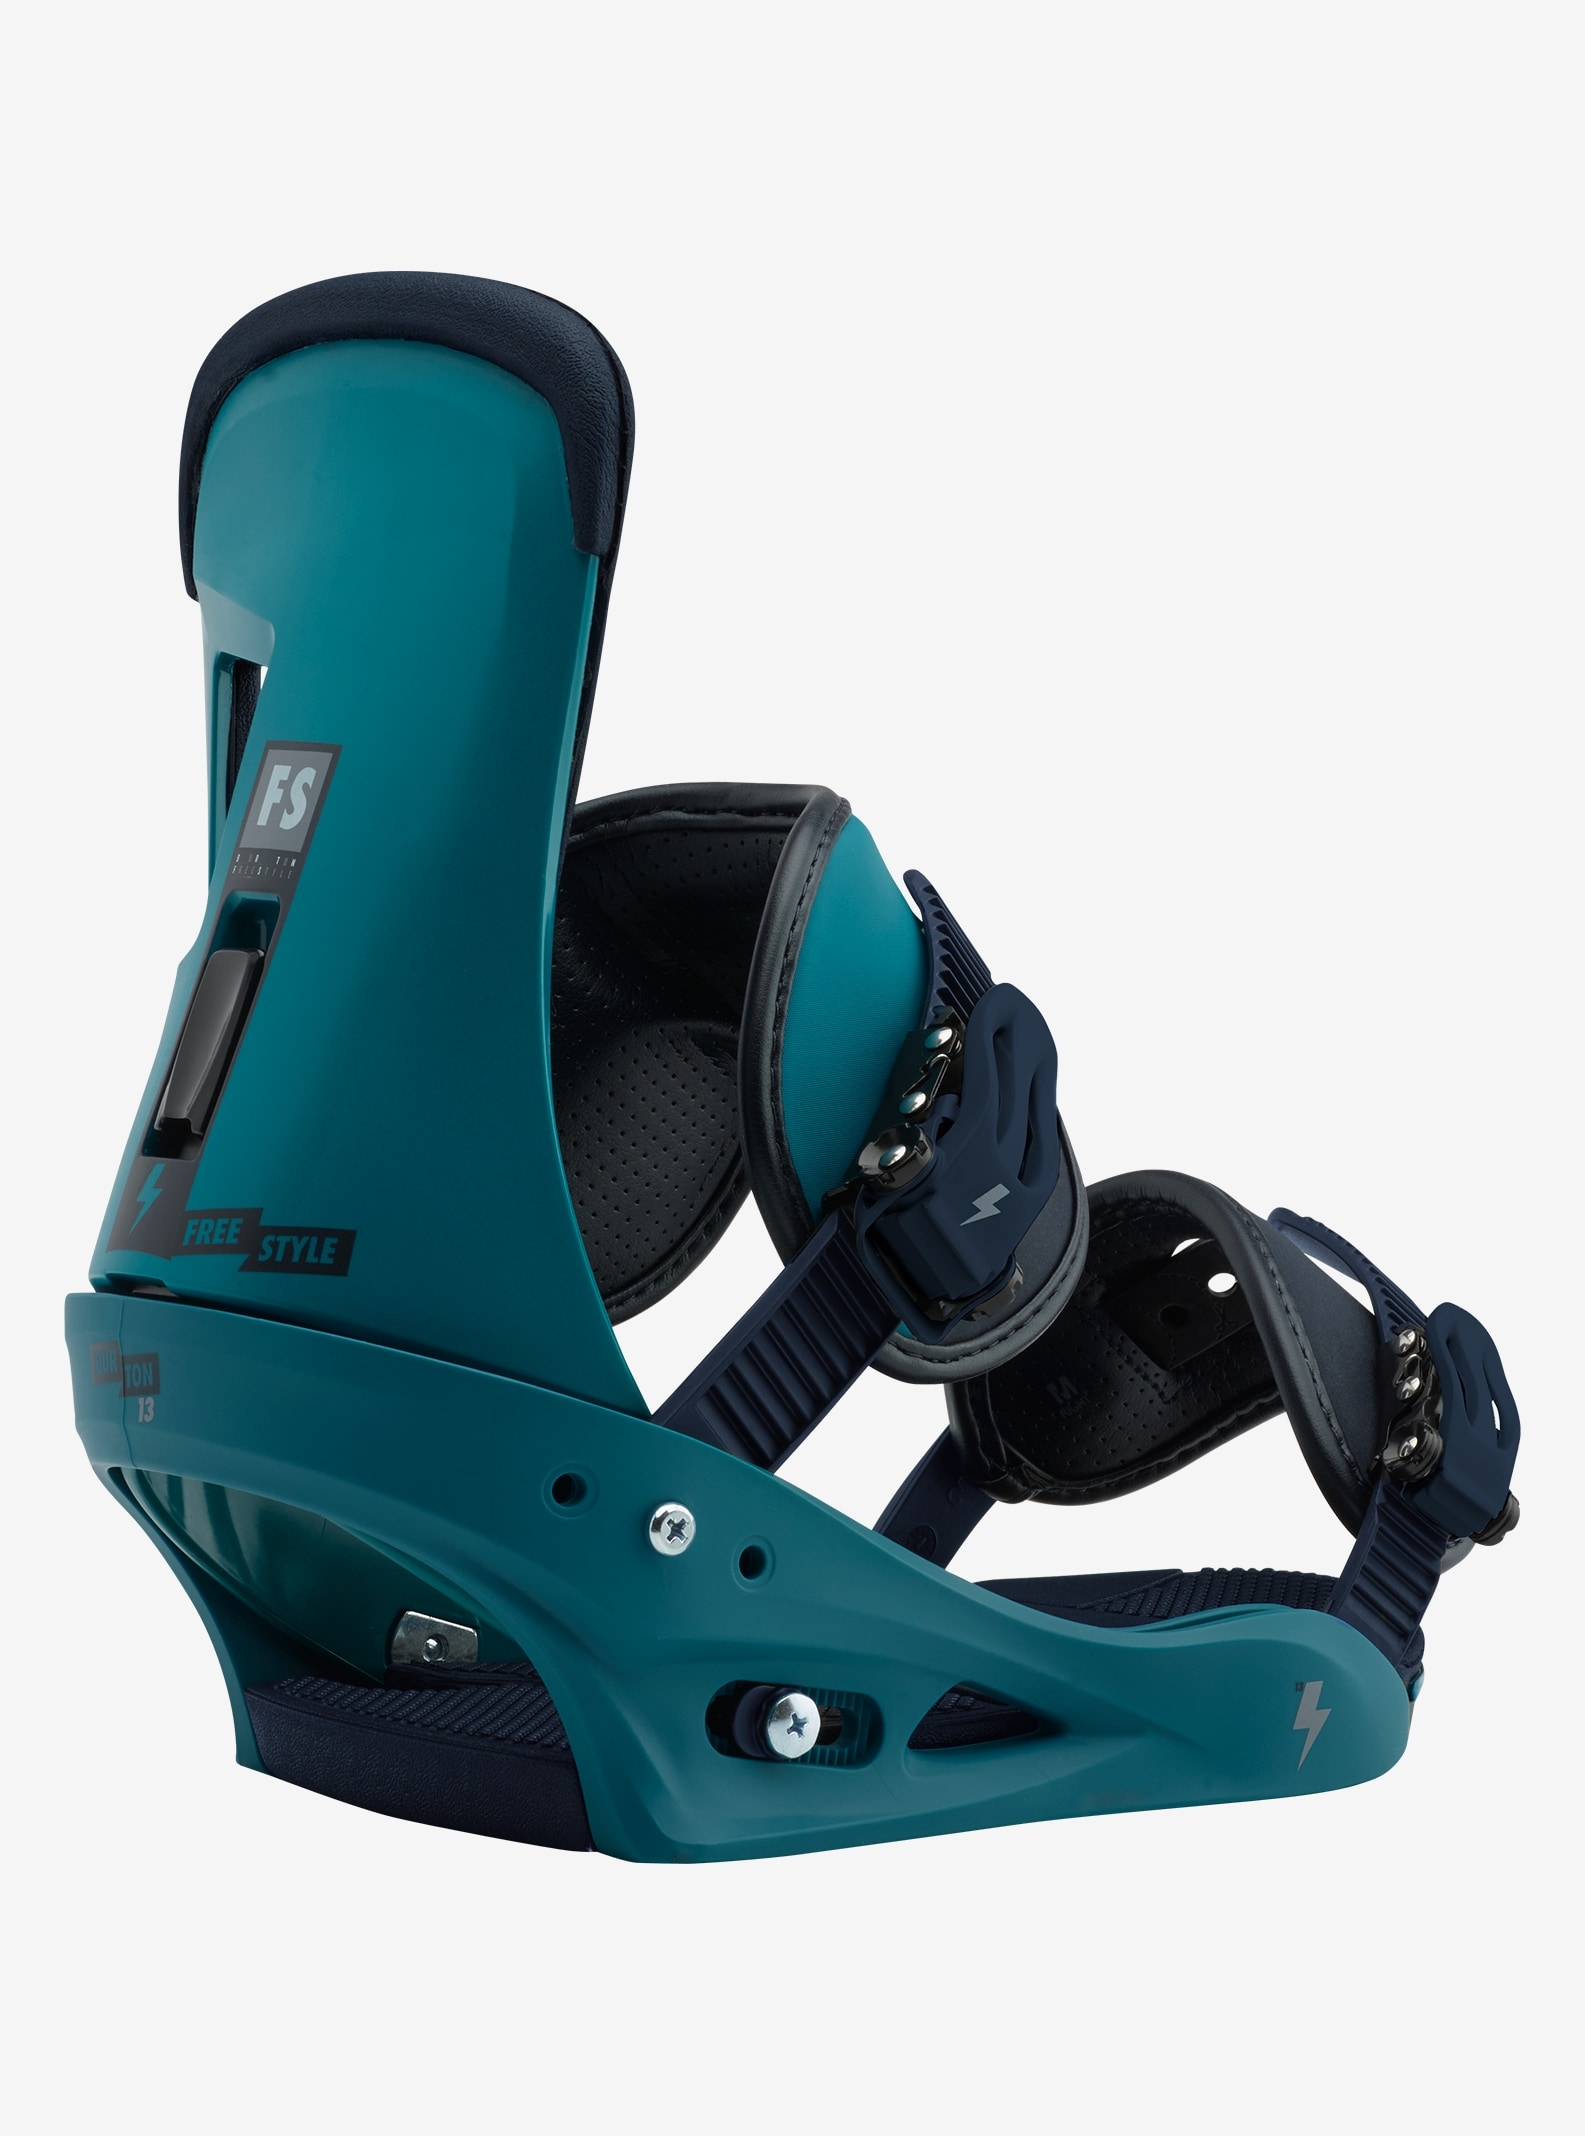 Men's Burton Freestyle Snowboard Binding shown in Mariner Green